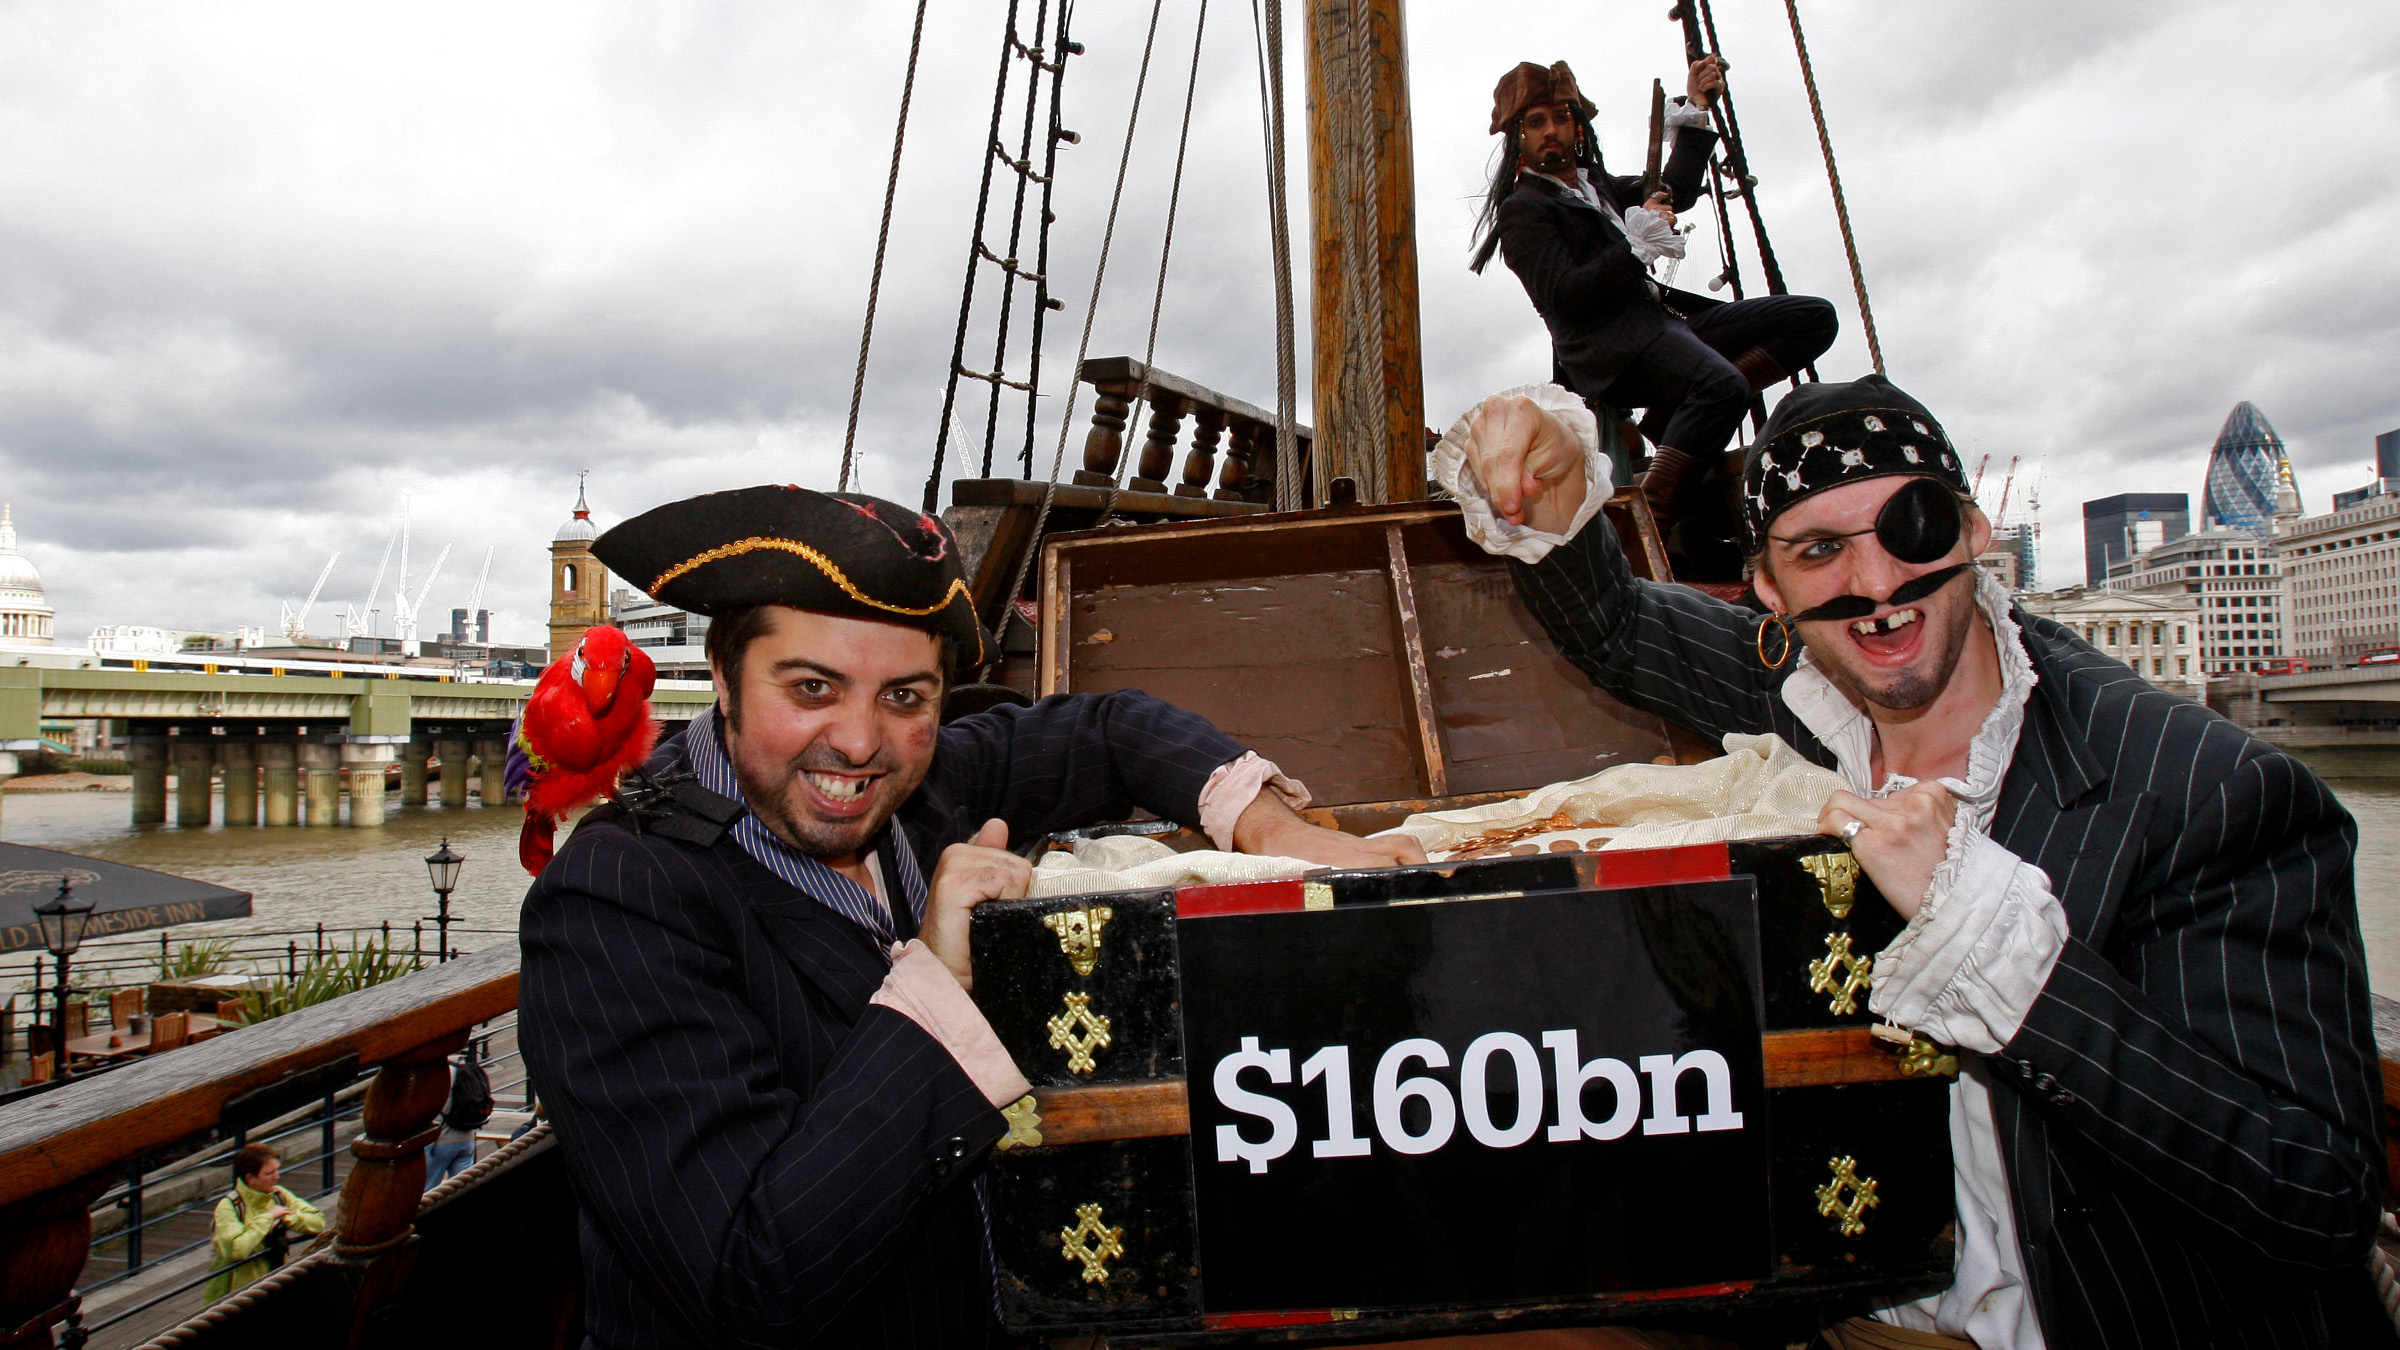 Protesters dressed up as pirates pose on a recreation of Sir Francis Drake's galleon 'Golden Hinde' to highlight the problem of tax avoidance by multinational companies ahead of the G20 Finance Ministers meeting on Sept. 4, in London, Thursday, Sept. 3, 2009.